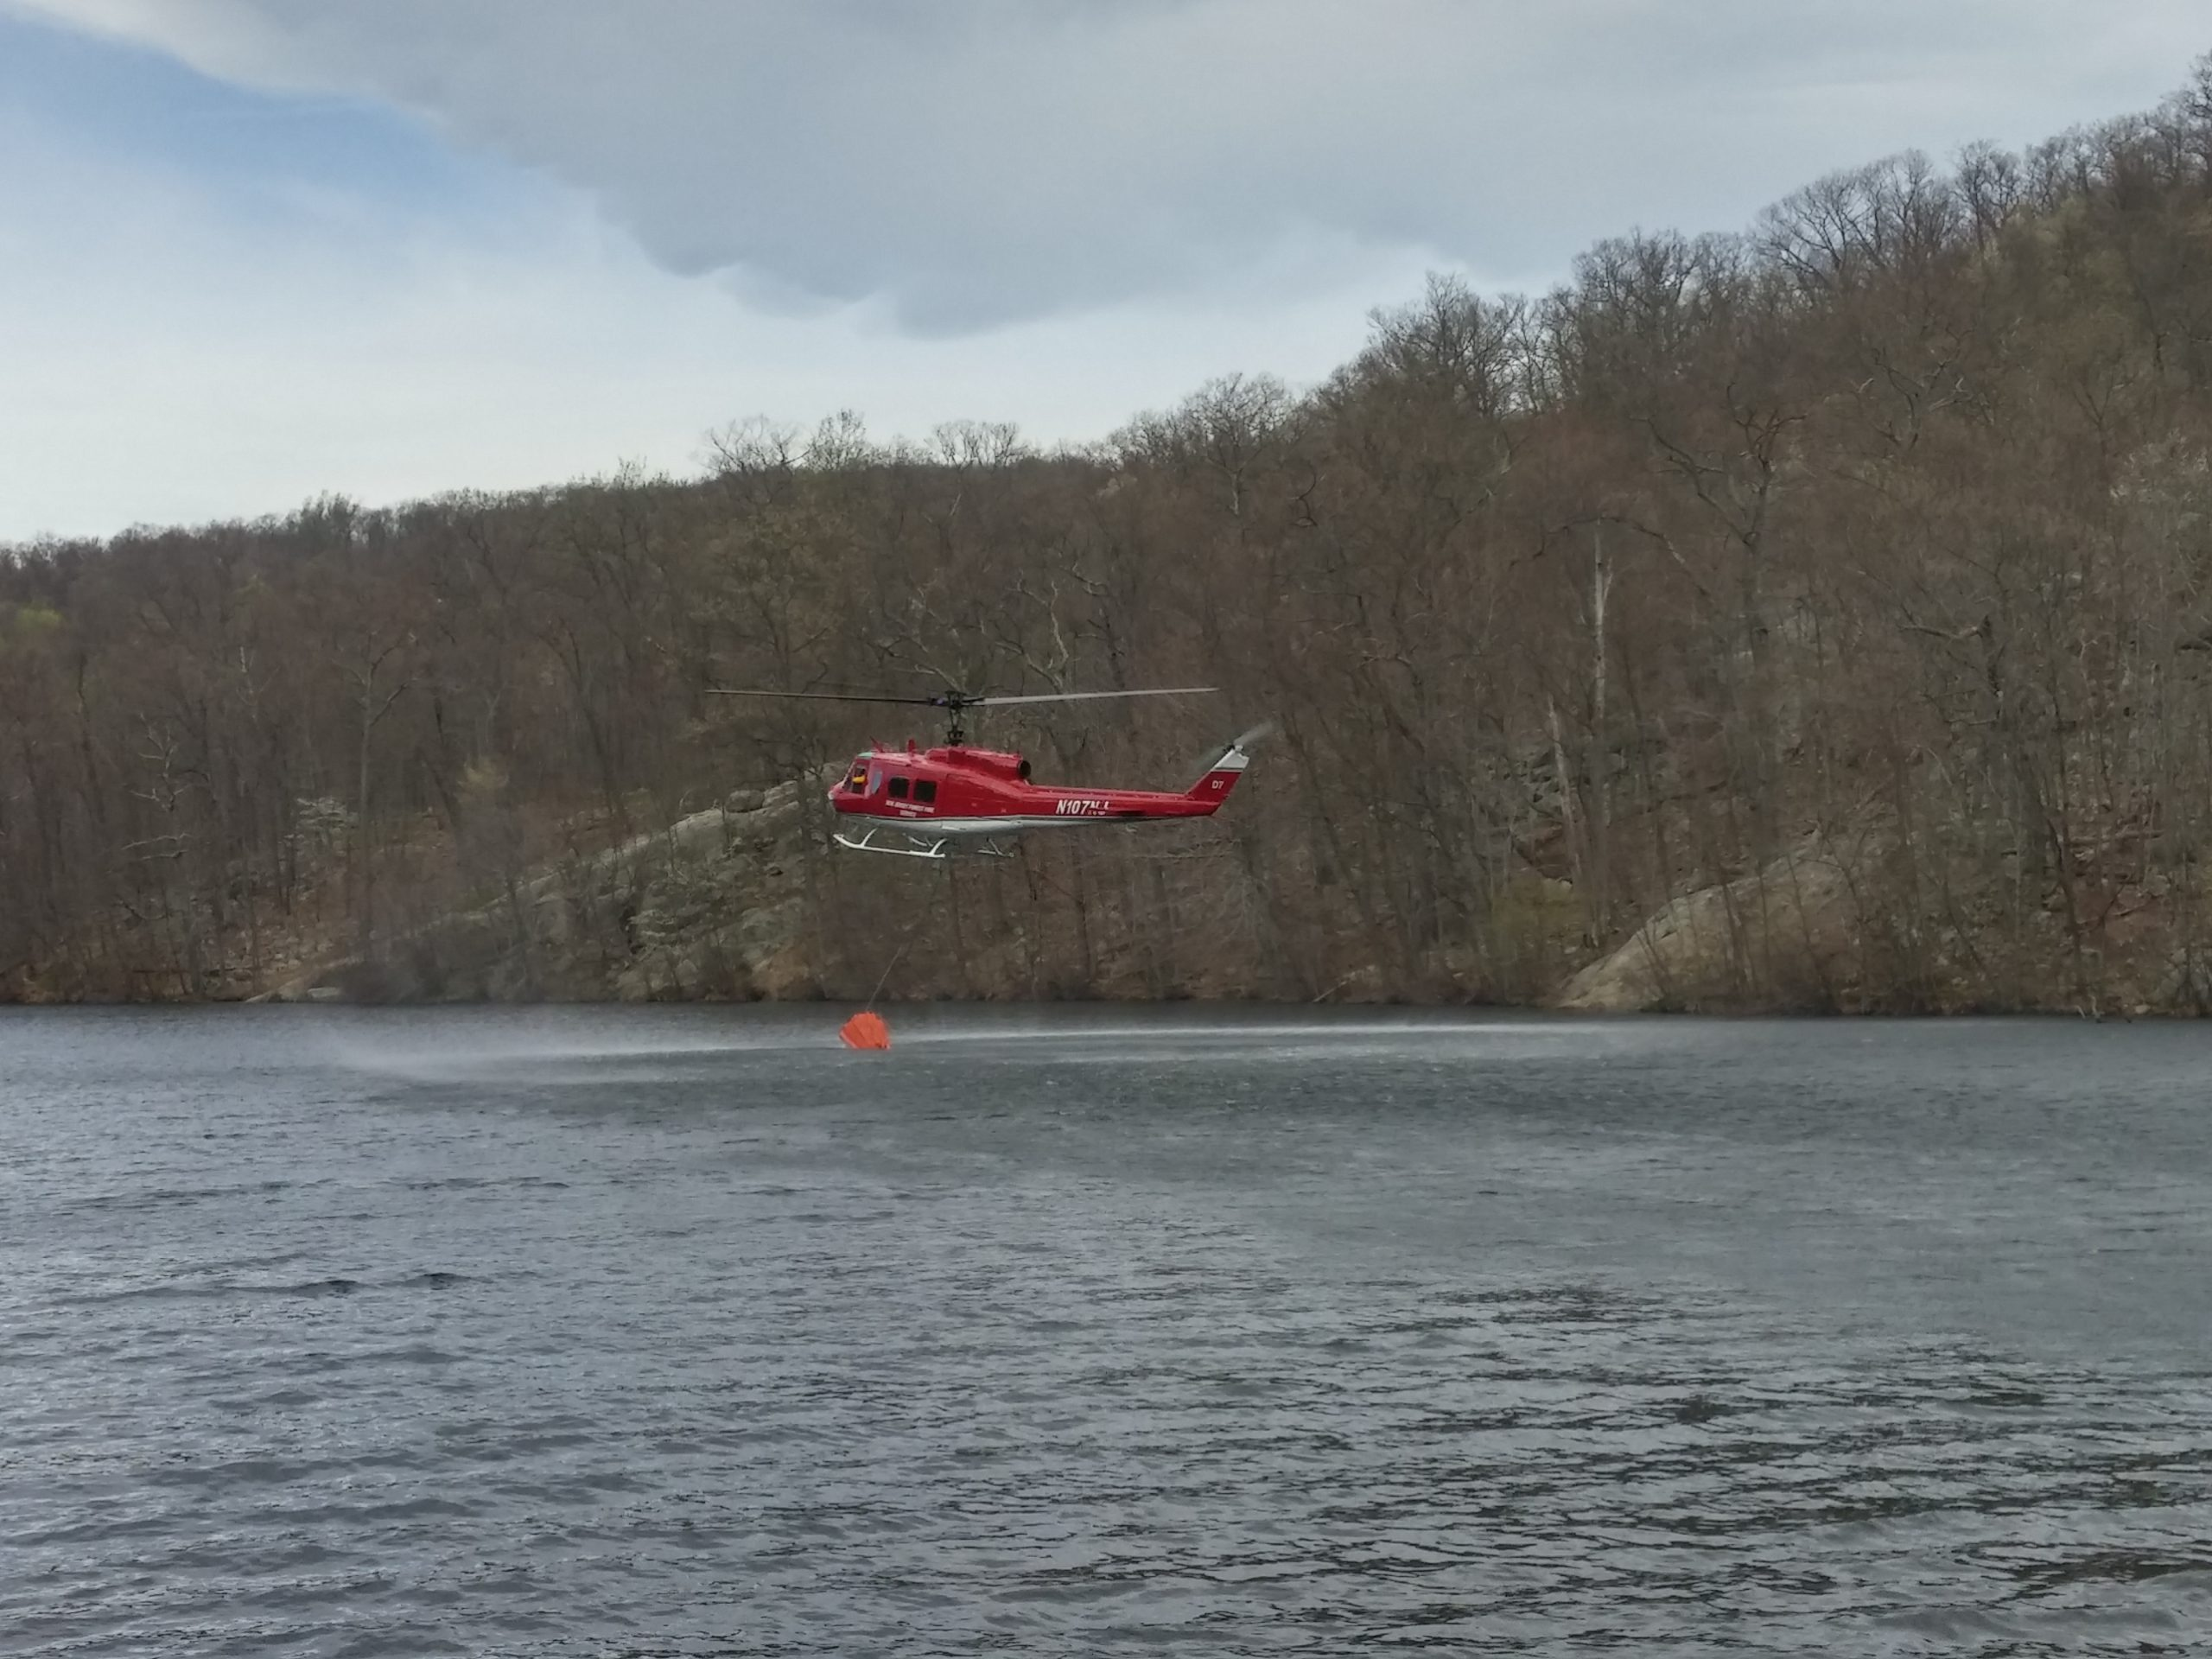 Throwback Thursday: Helicopter Firefighting